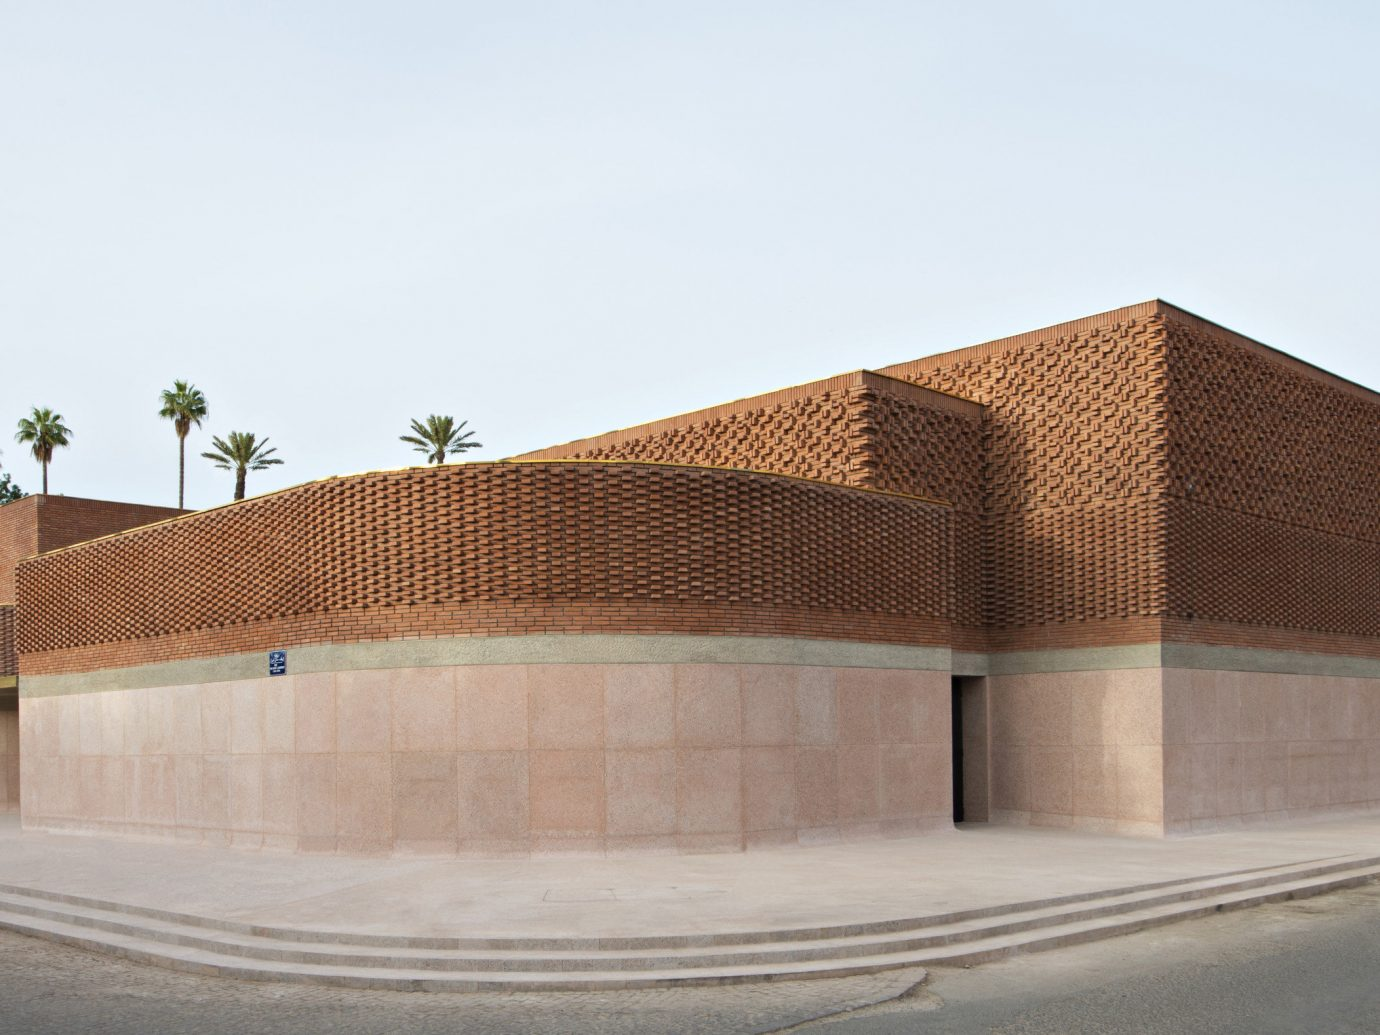 Arts + Culture Marrakech Morocco Style + Design sky outdoor road Architecture wall residential area building facade house